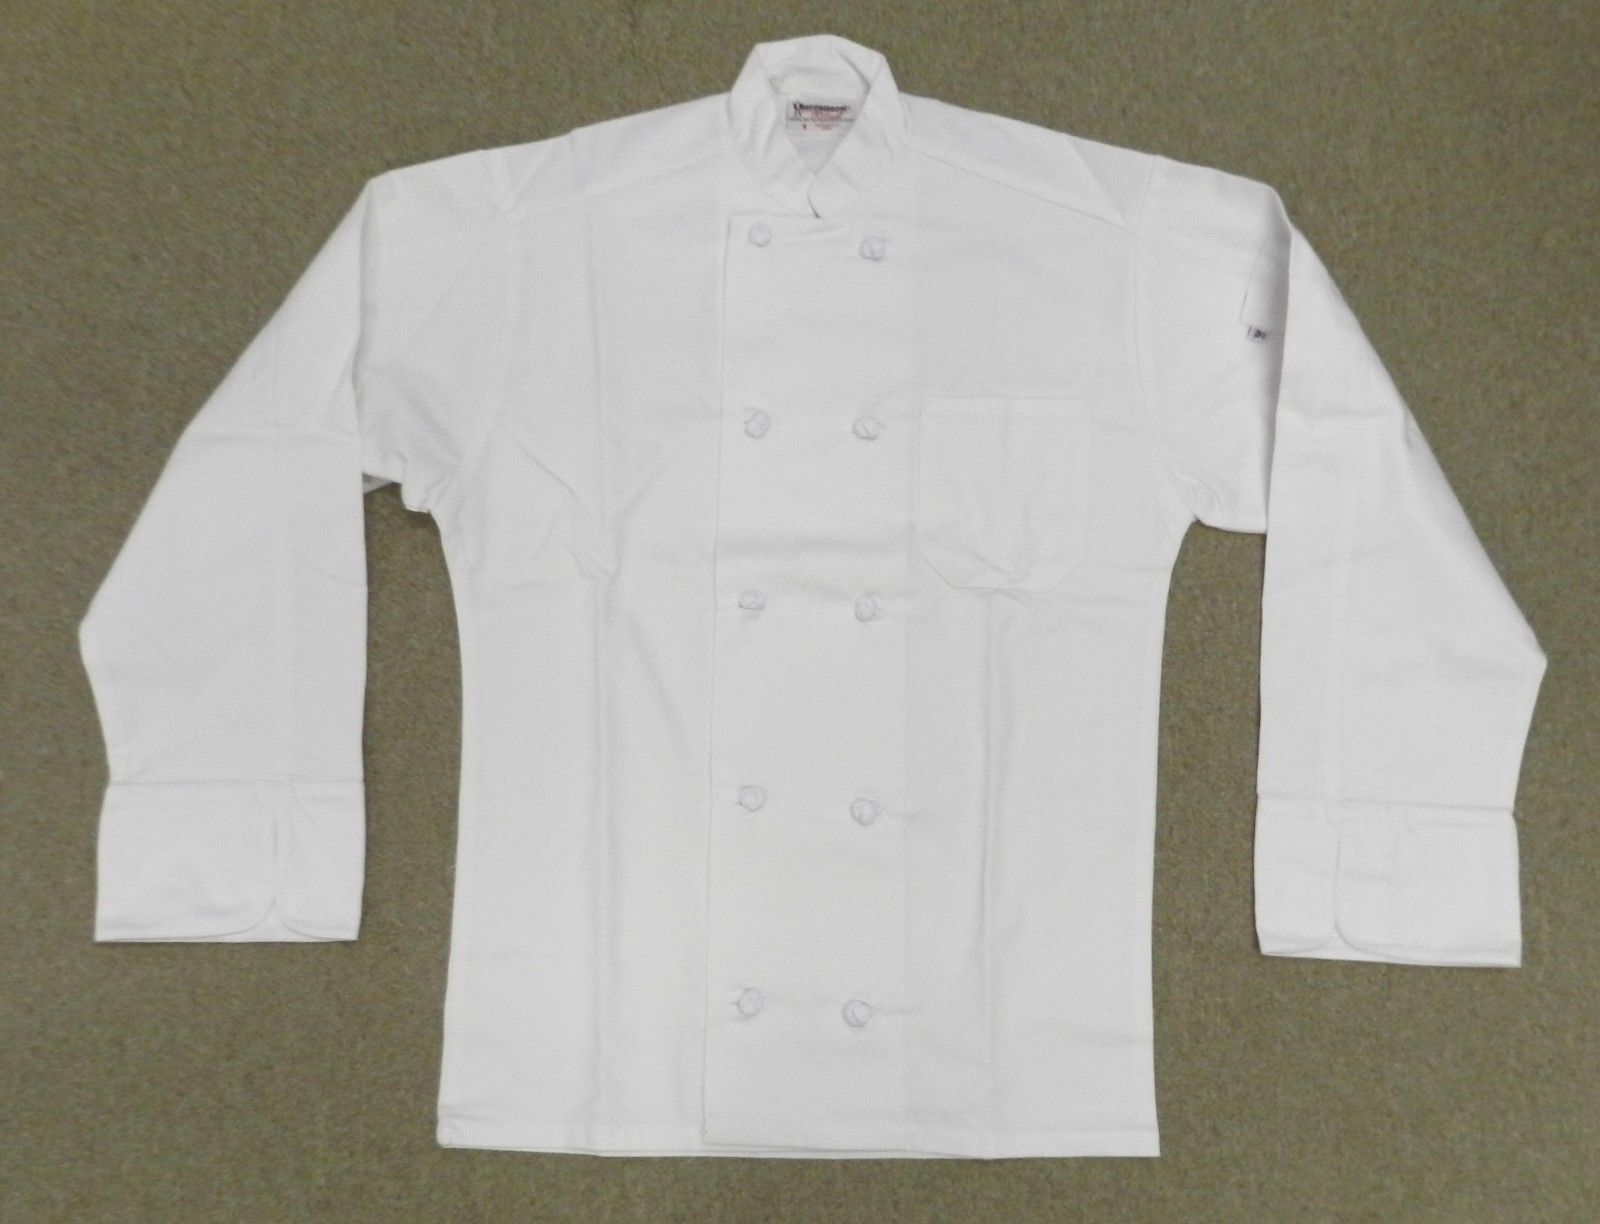 Uncommon Threads 403 Cloth Knot Button Uniform Chef Coat Jacket White XL New